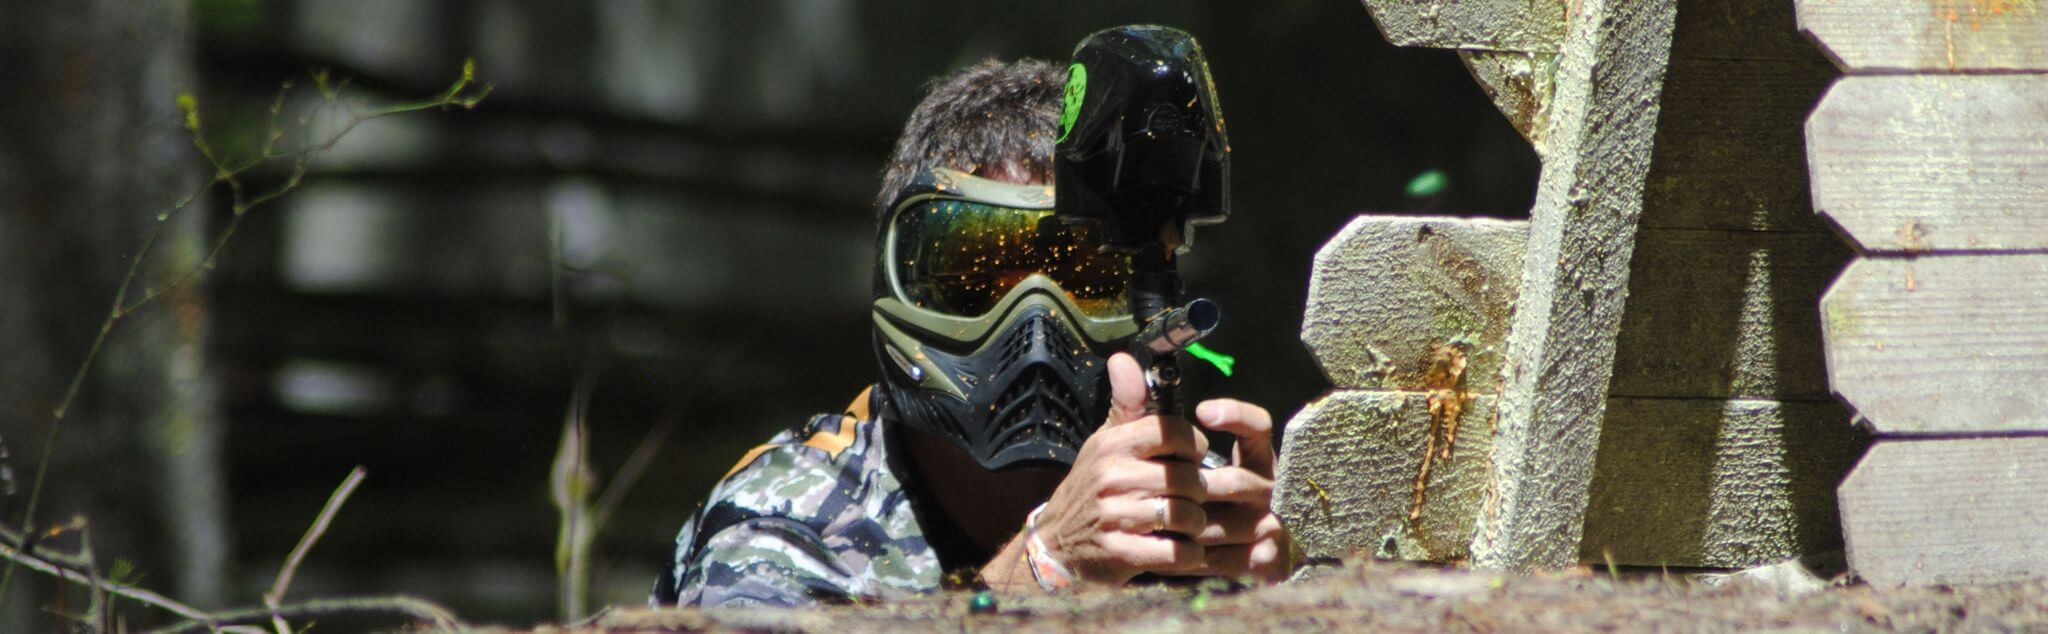 Paintball in Perth and Kinross